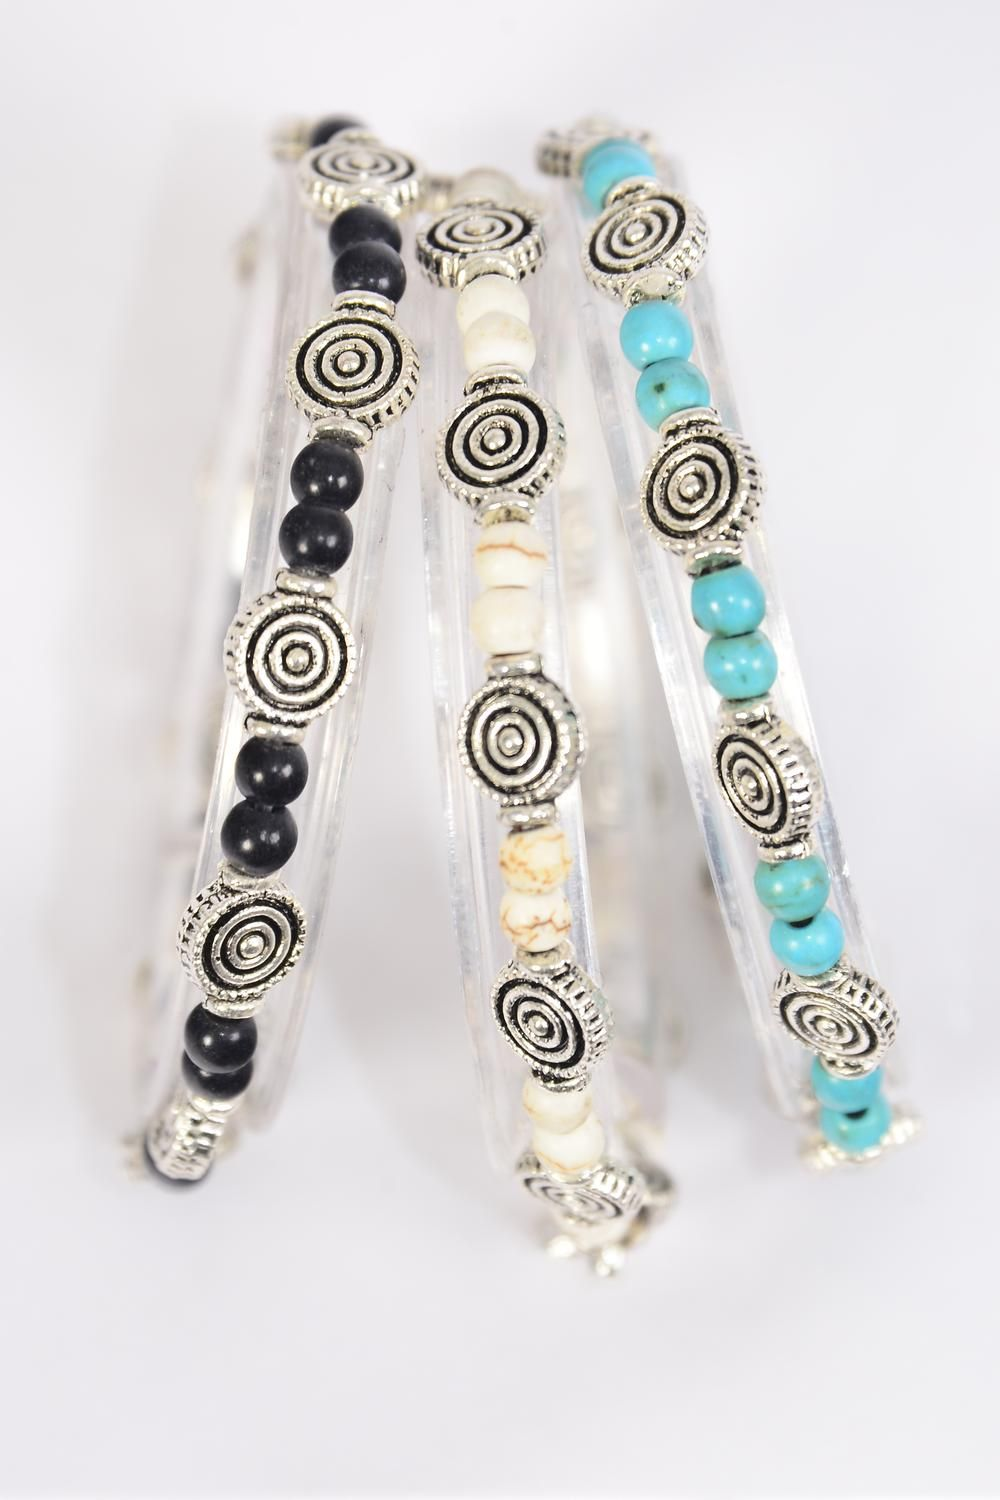 Bracelet Aztec Swirl Stretch 4 mm Real Semiprecious Stone/DZ **Stretch** 4 Black,4 Ivory,4 Turquoise Asst,Hang Tag & OPP Bag & UPC Code